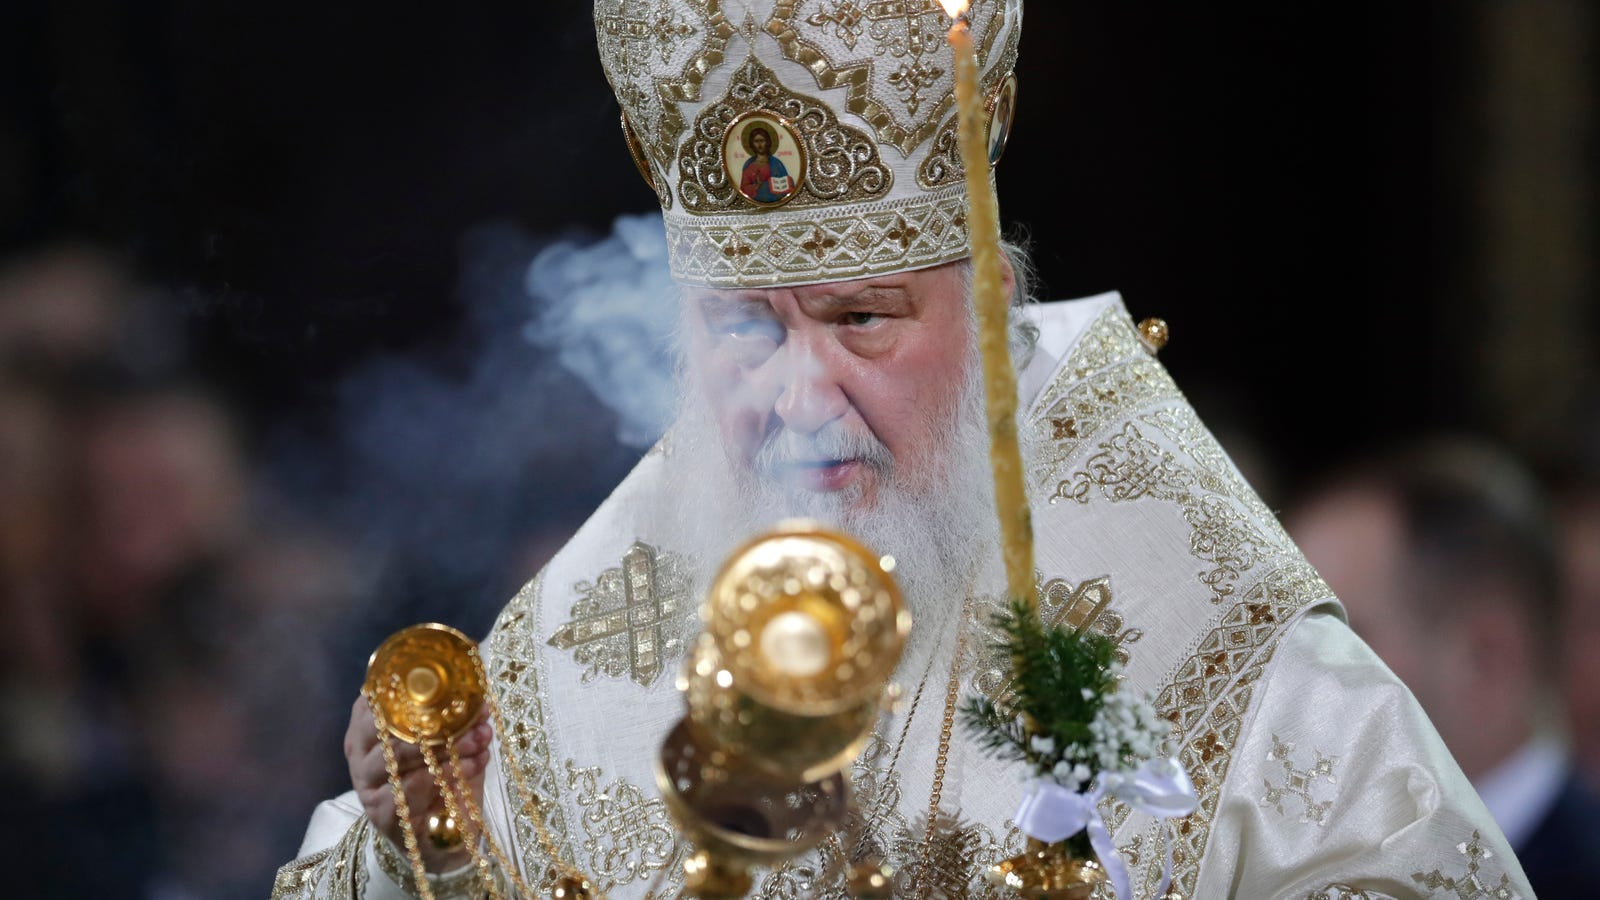 Head of Russian Orthodox Church Warns Big Data Will Usher in the Antichrist and, Well, Hmm